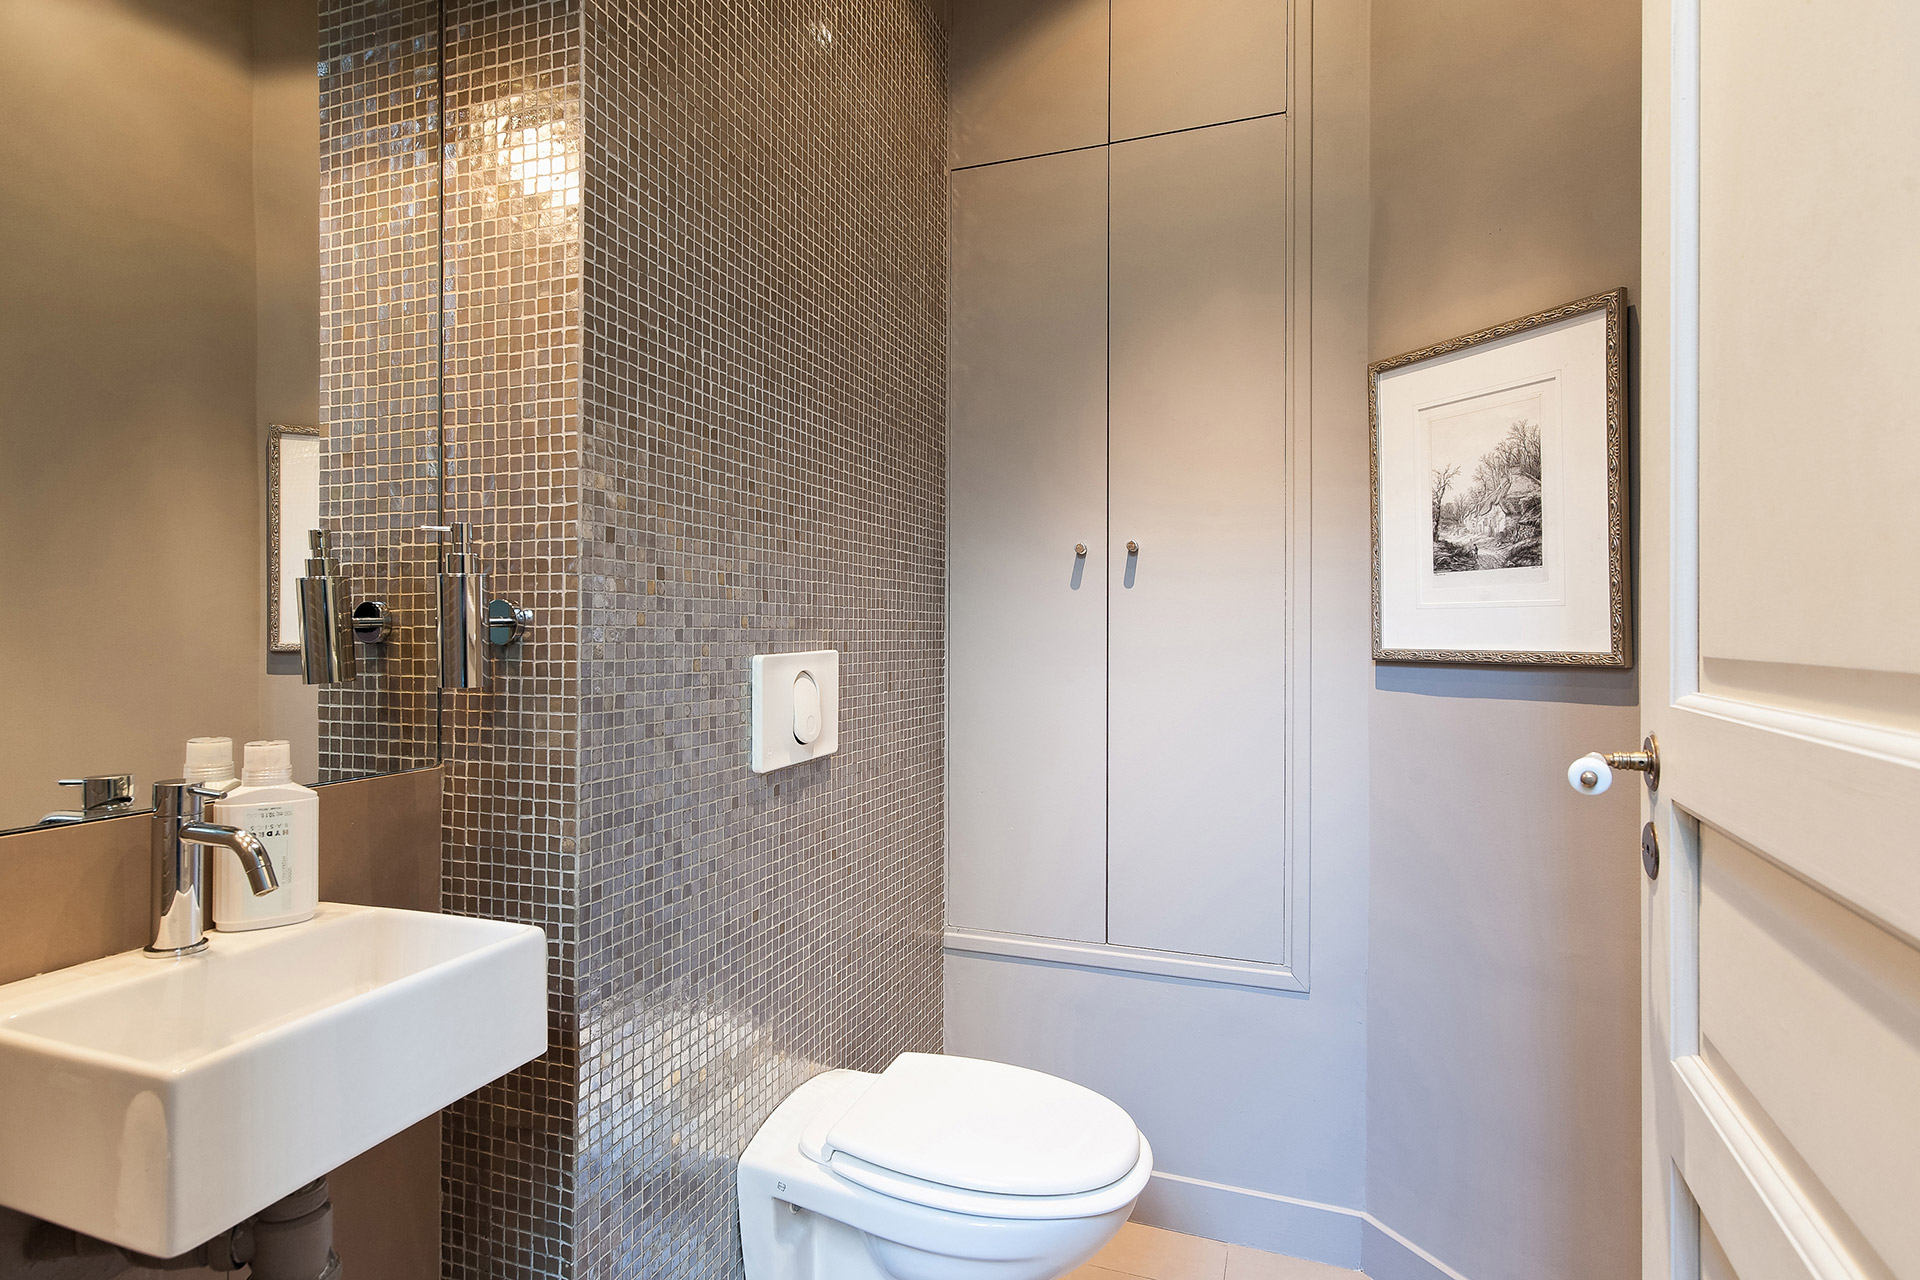 Separate half bath with toilet and sink in the Mâcon vacation rental offered by Paris Perfect